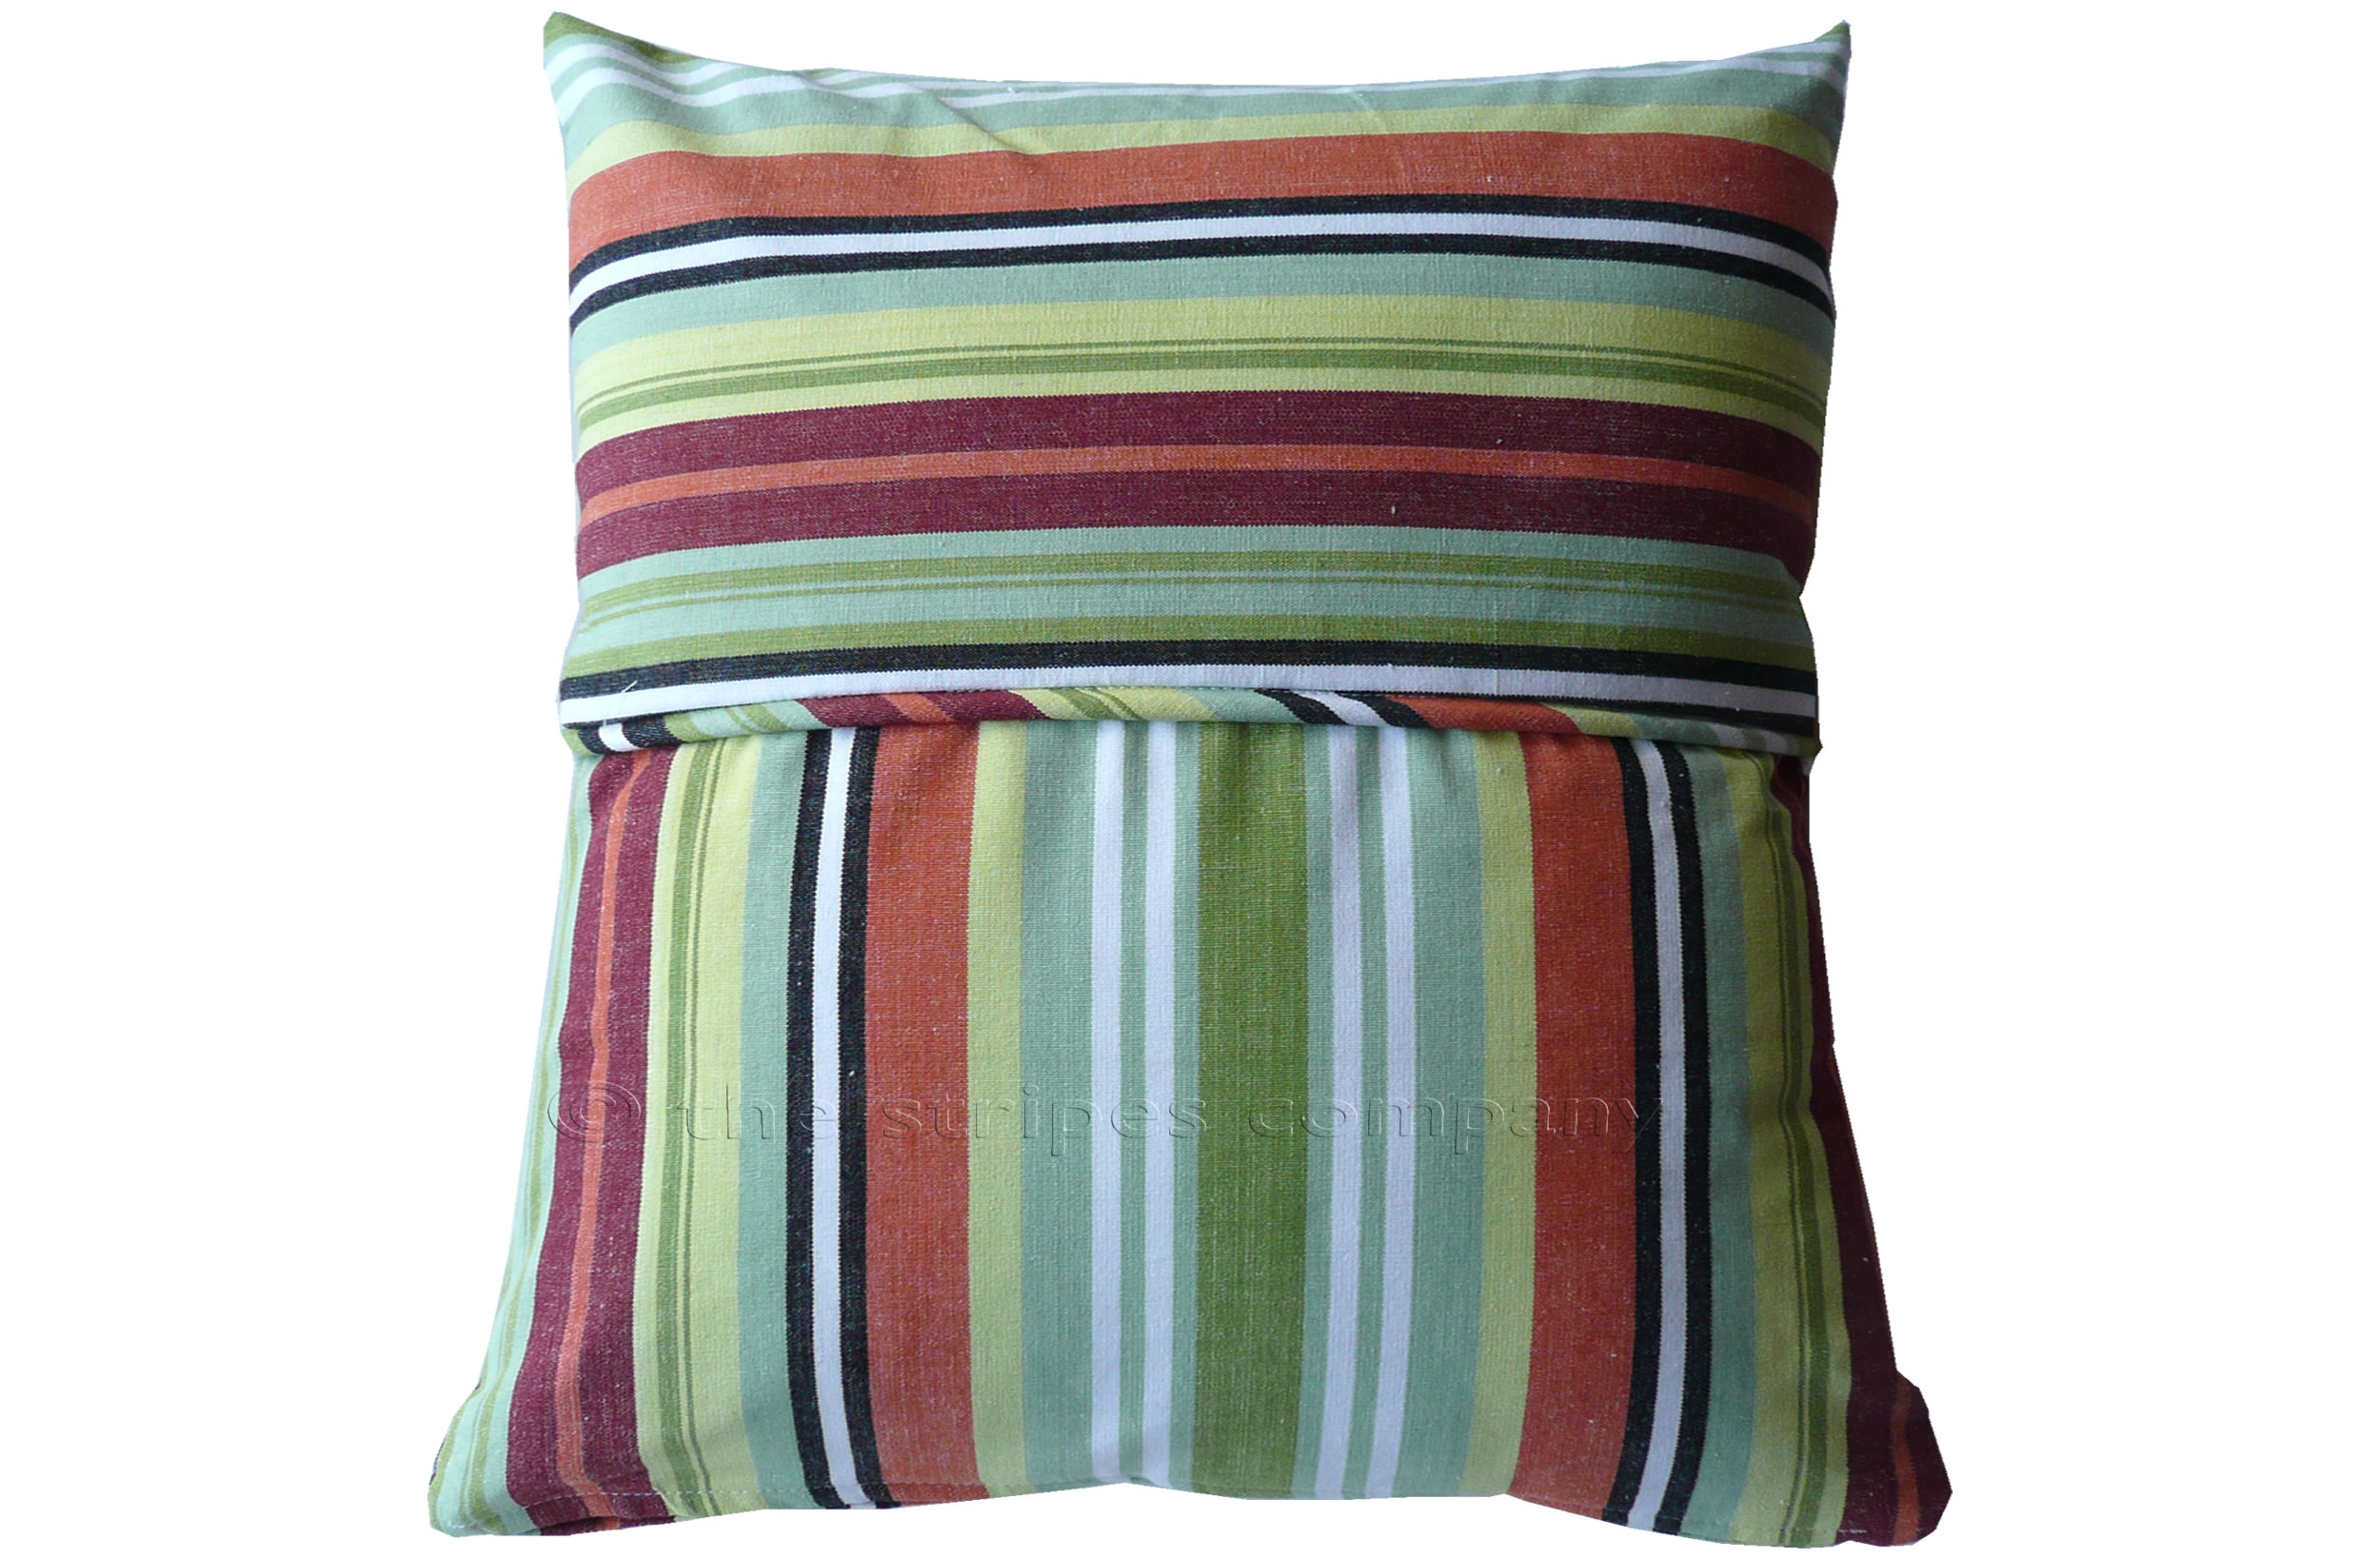 Green Striped Piped Cushions | Square Piped Cushions Egg and Spoon Stripes